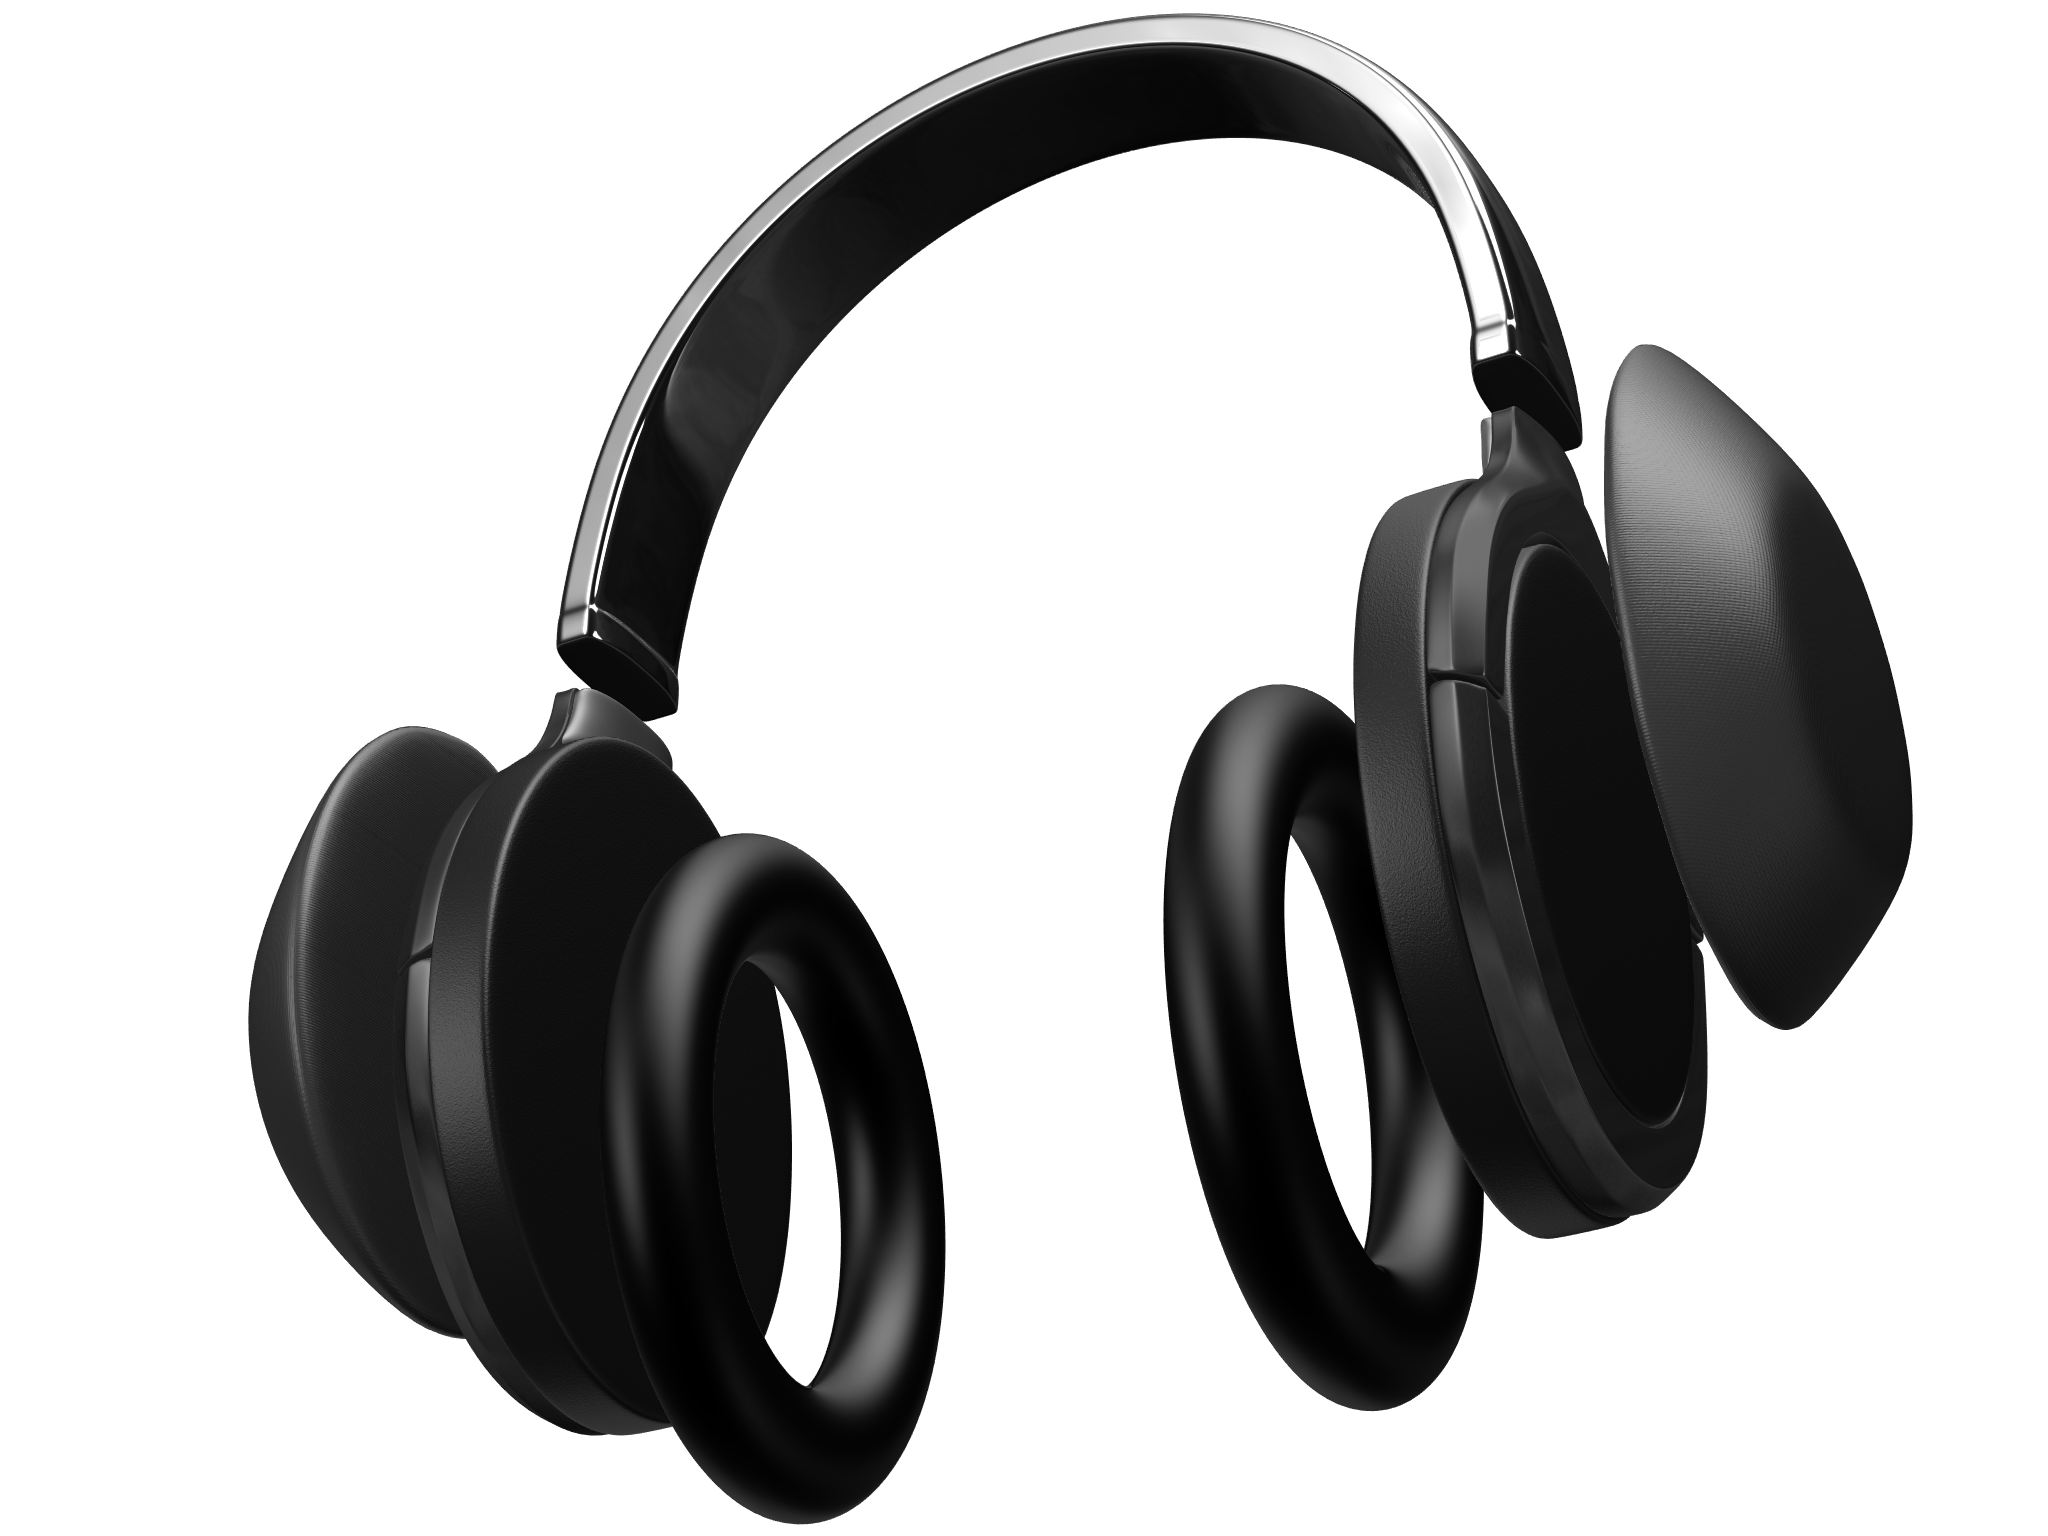 Headphone test - 3D design by sovok Mar 2, 2018